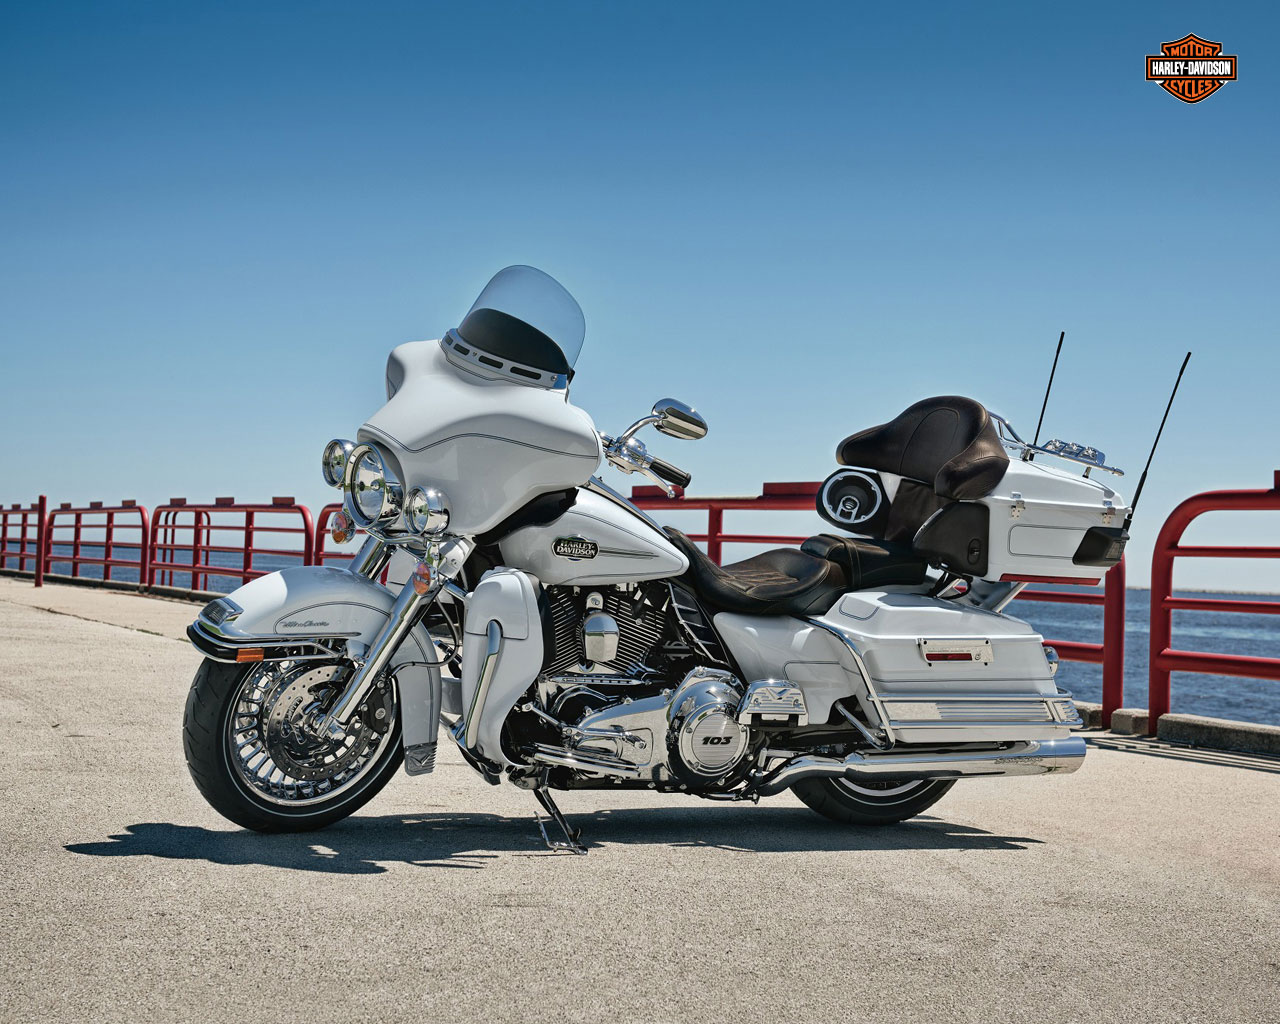 Harley-Davidson FLHTC 1340 Electra Glide Classic 1994 pics #16370